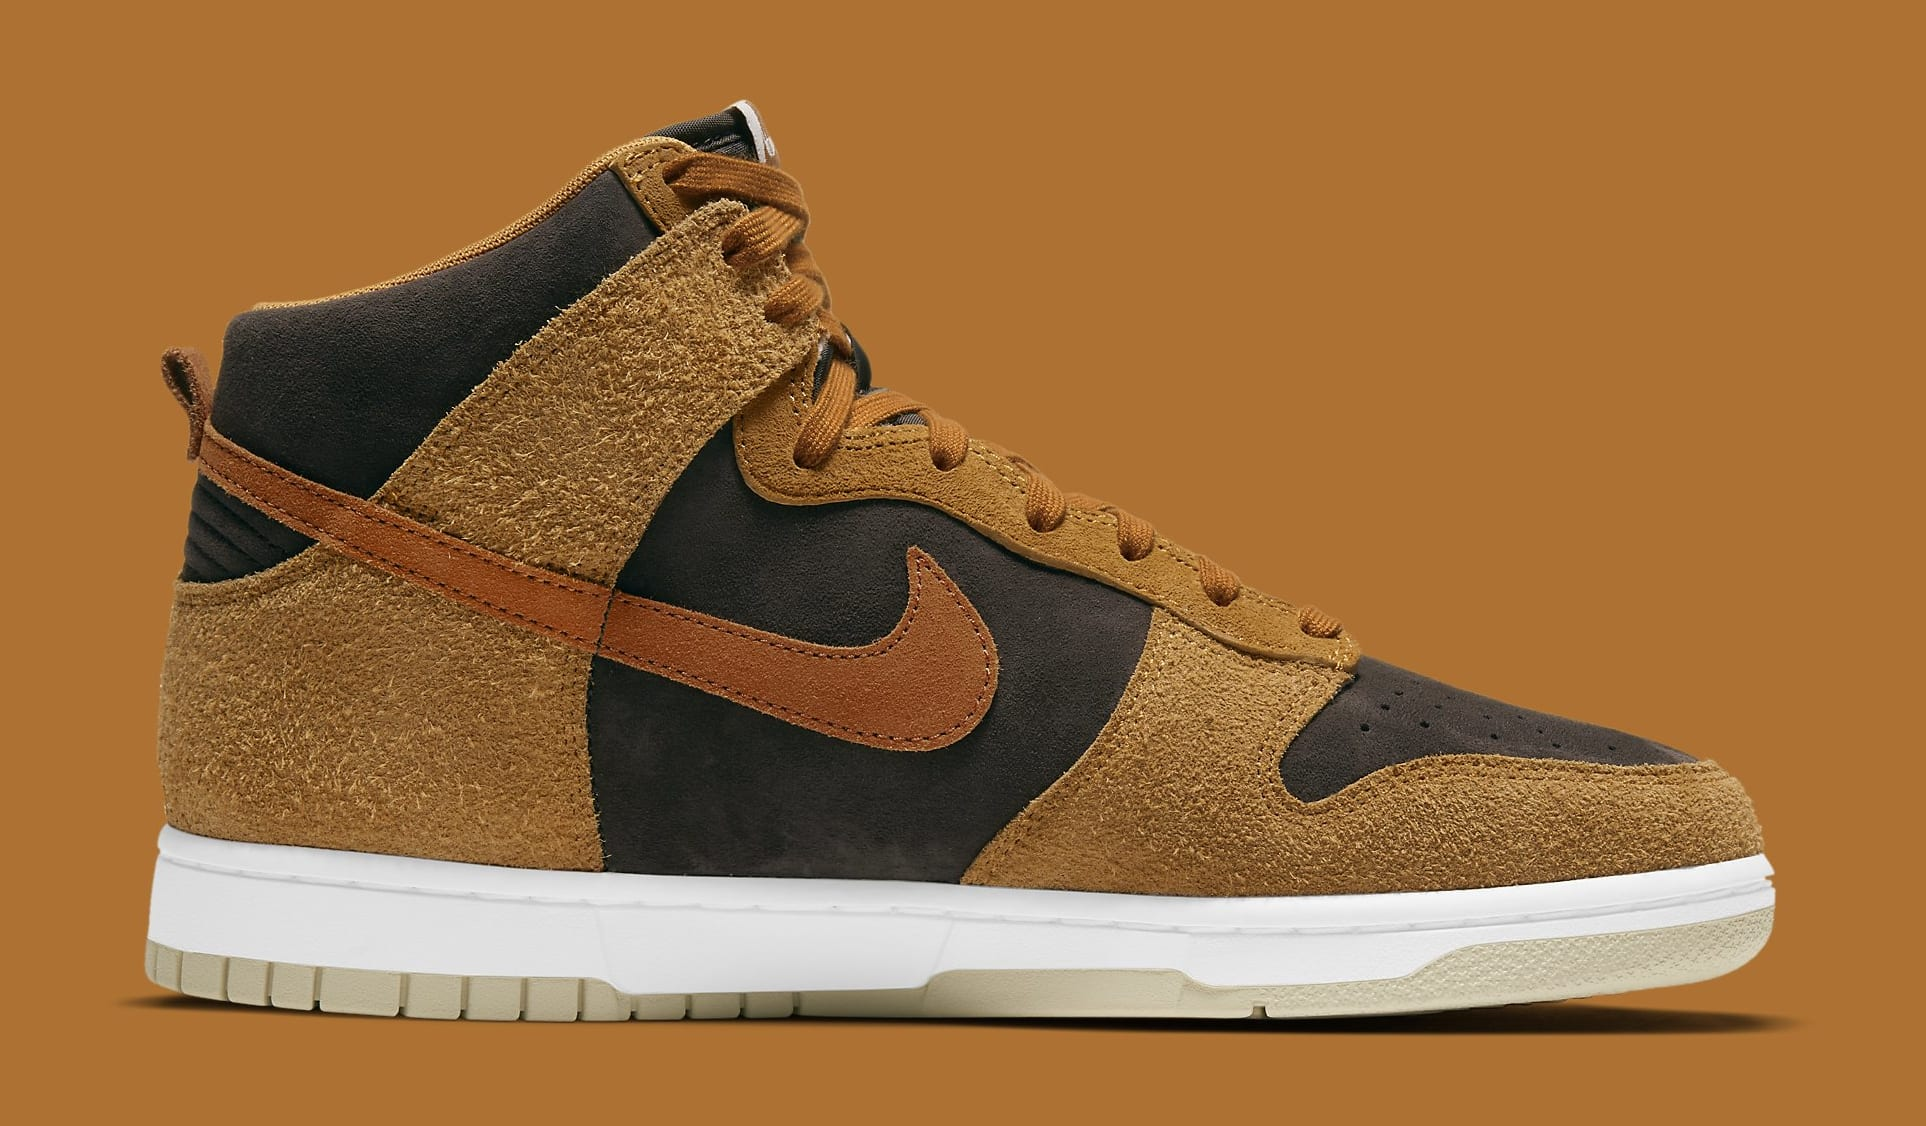 Nike Dunk High 'Dark Curry' DD1401-200 Medial